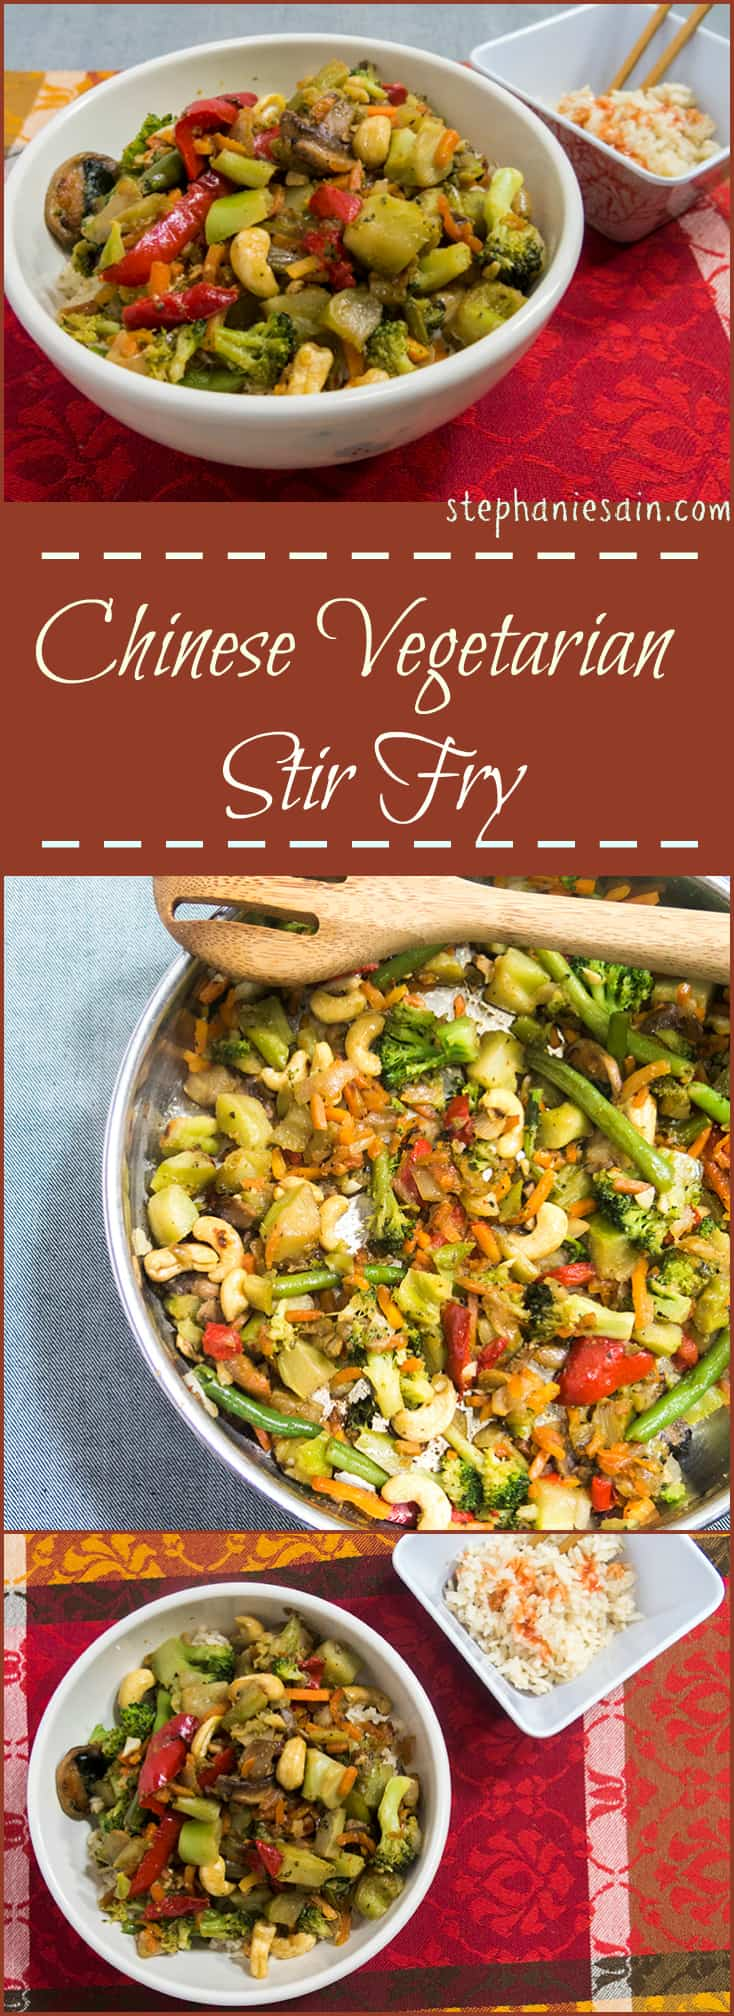 Chinese Vegetarian Stir Fry is a quick, tasty, healthy dinner perfect for any night of the week. Better than takeout. Vegetarian, Vegan, and Gluten Free.